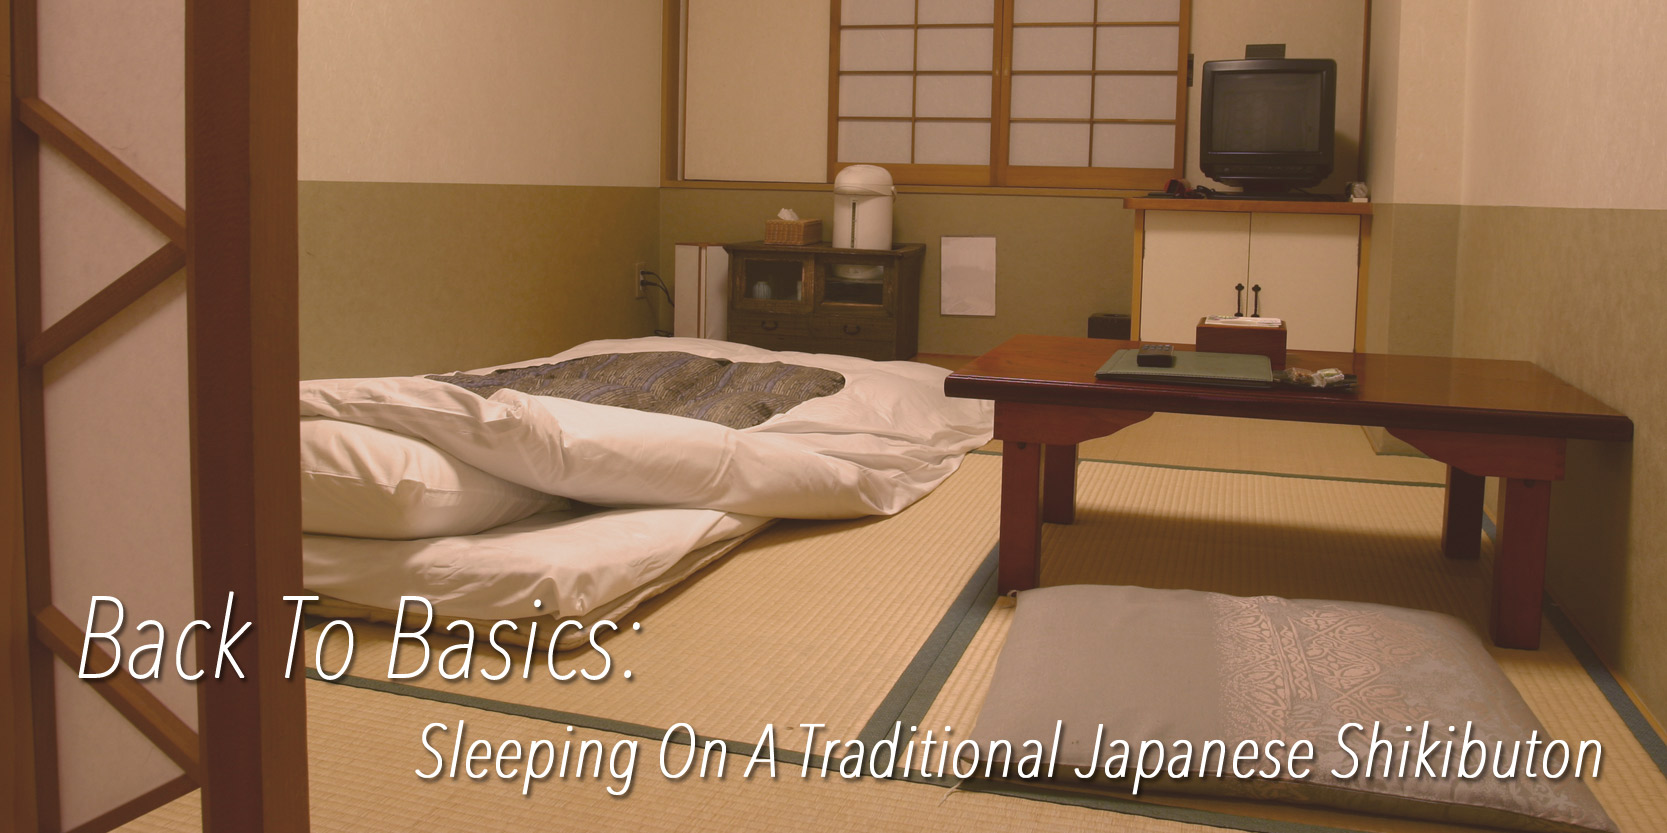 An Easy Shopping Guide For A Traditional Japanese Shikibuton Bed